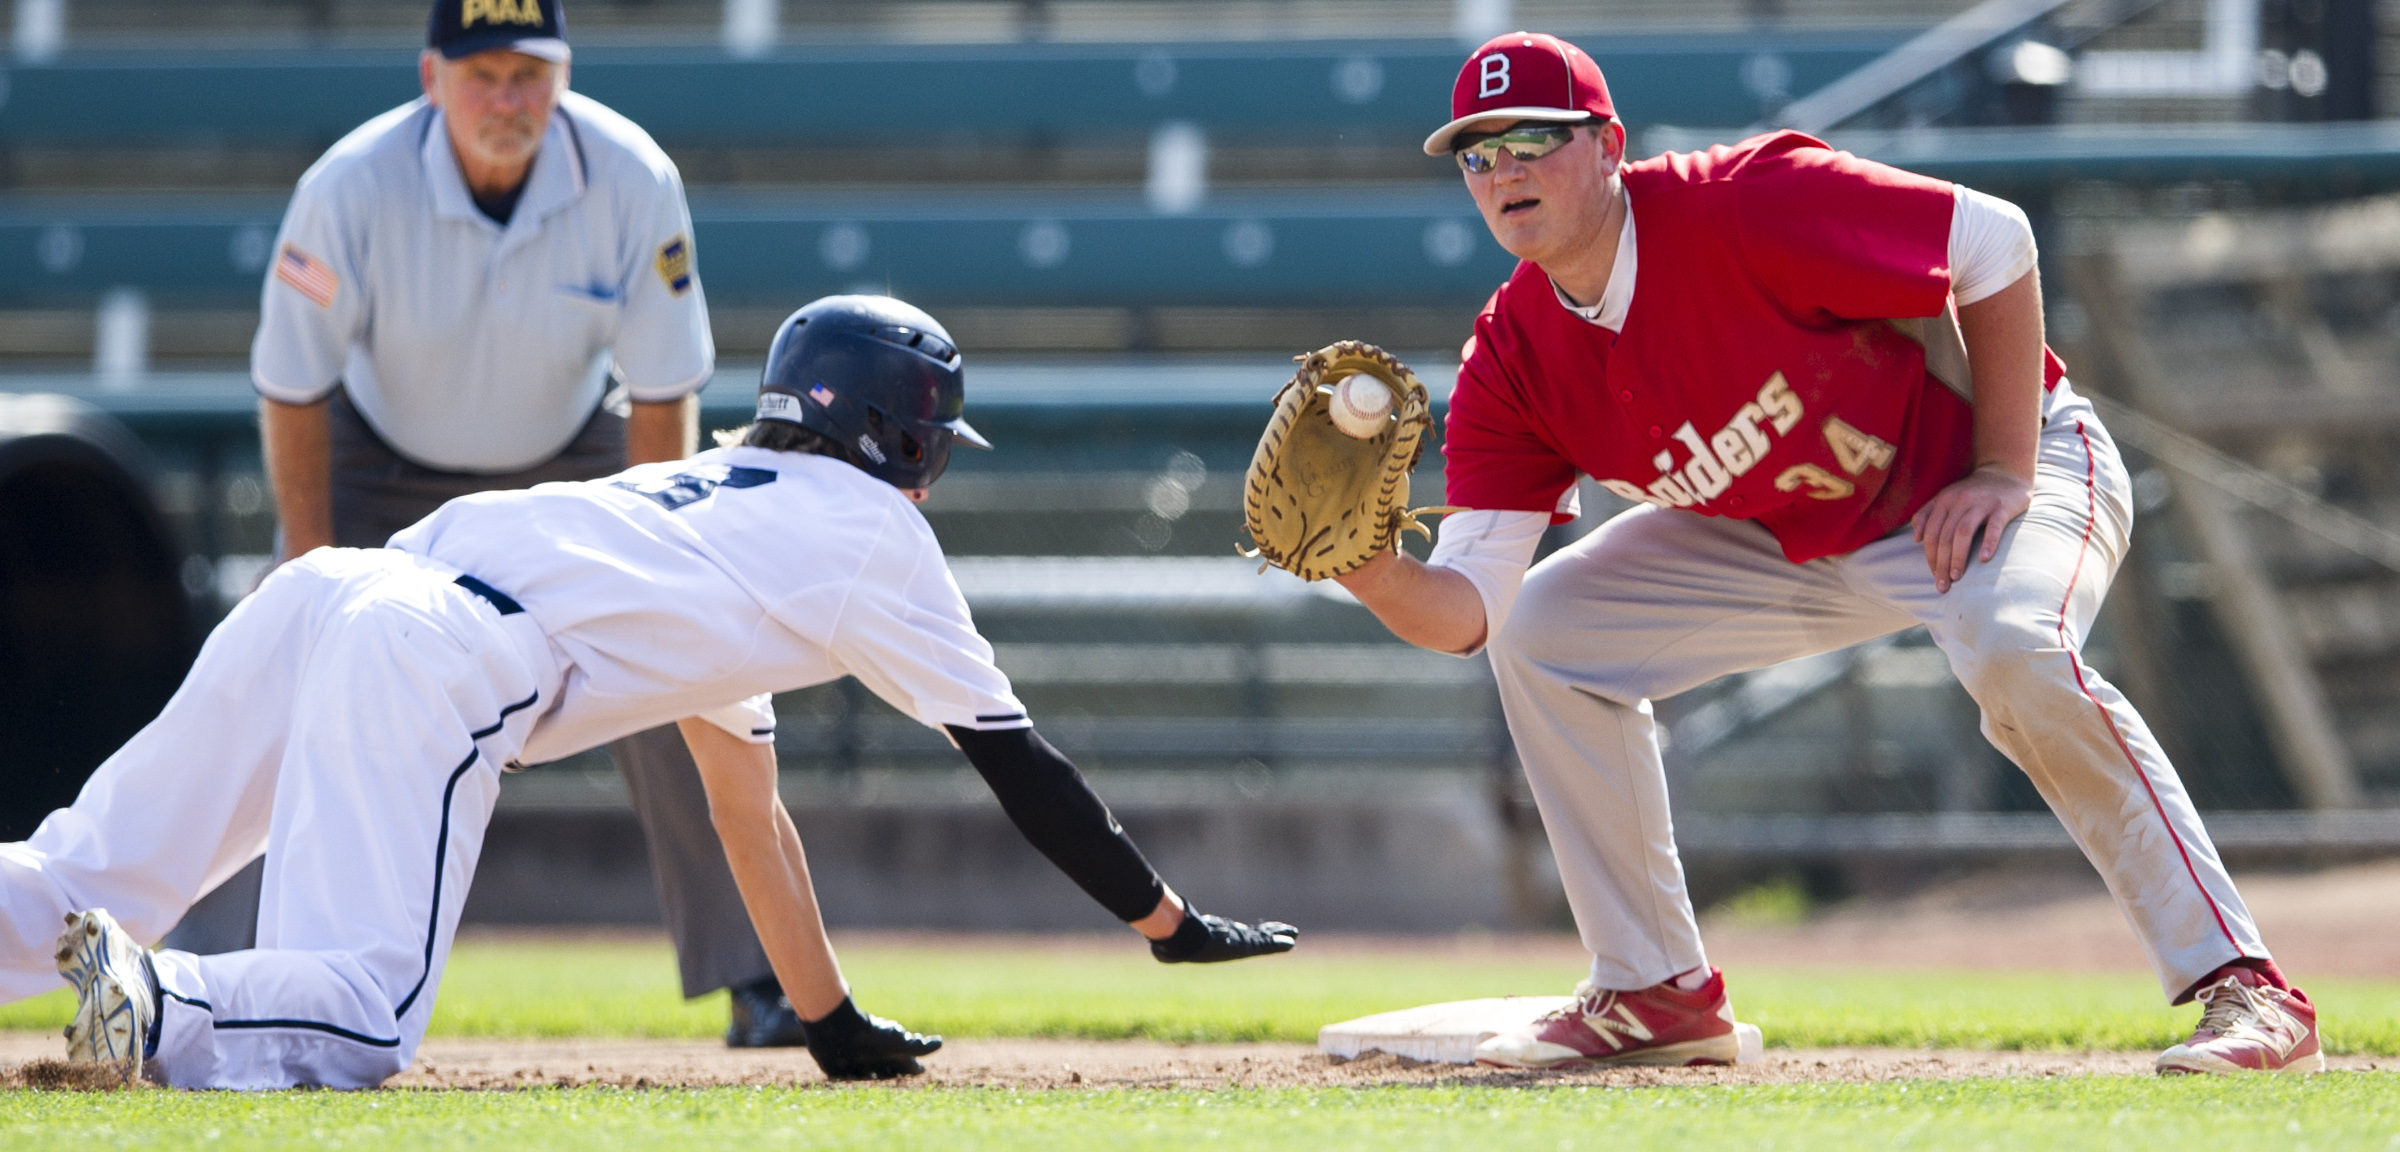 Bellefonte first baseman Logan Mathieu catches a throw from the pitcher after Hollidaysburg left fielder Andrew Moyer slides safely back to base during the PIAA District 6 championship game at Peoples Natural Gas Field on Wednesday, June 1, 2016.